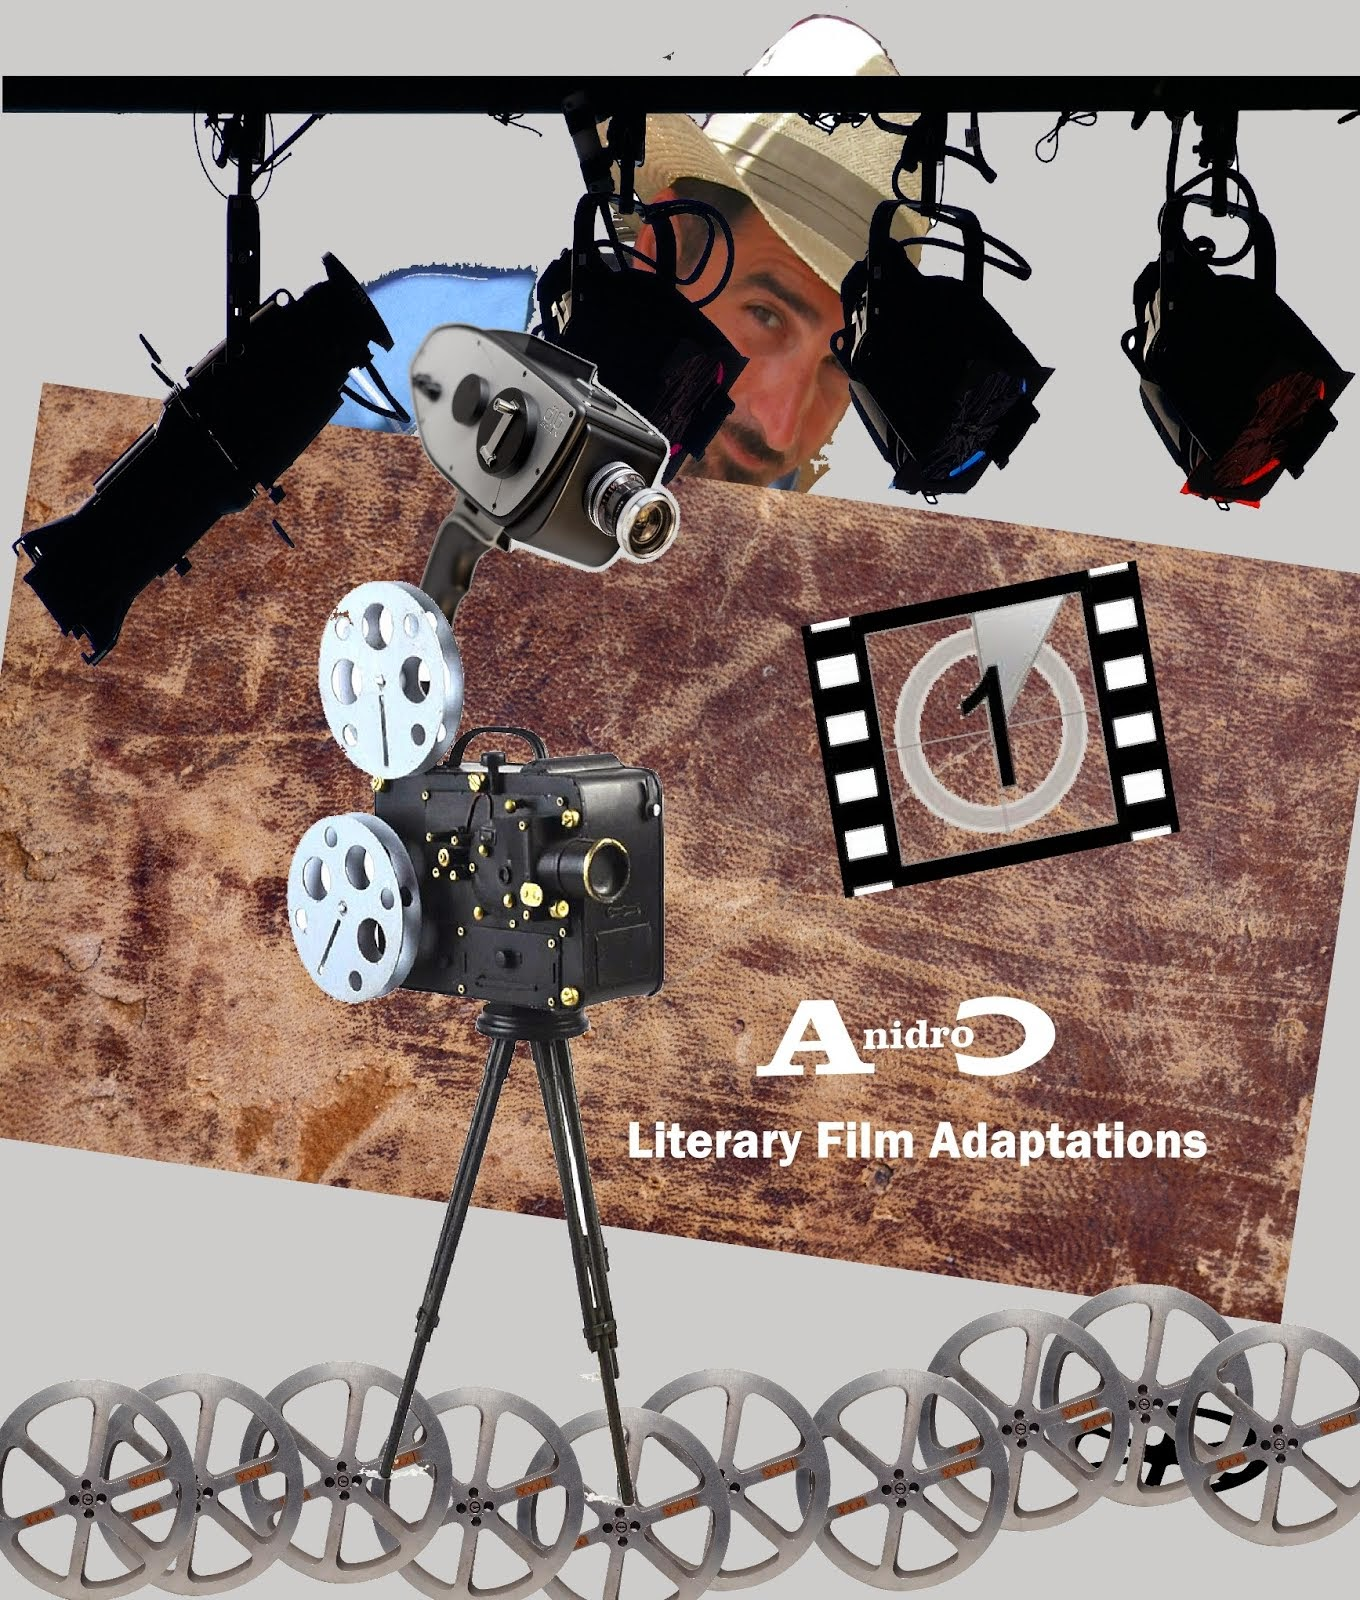 Literary Film Adaptations